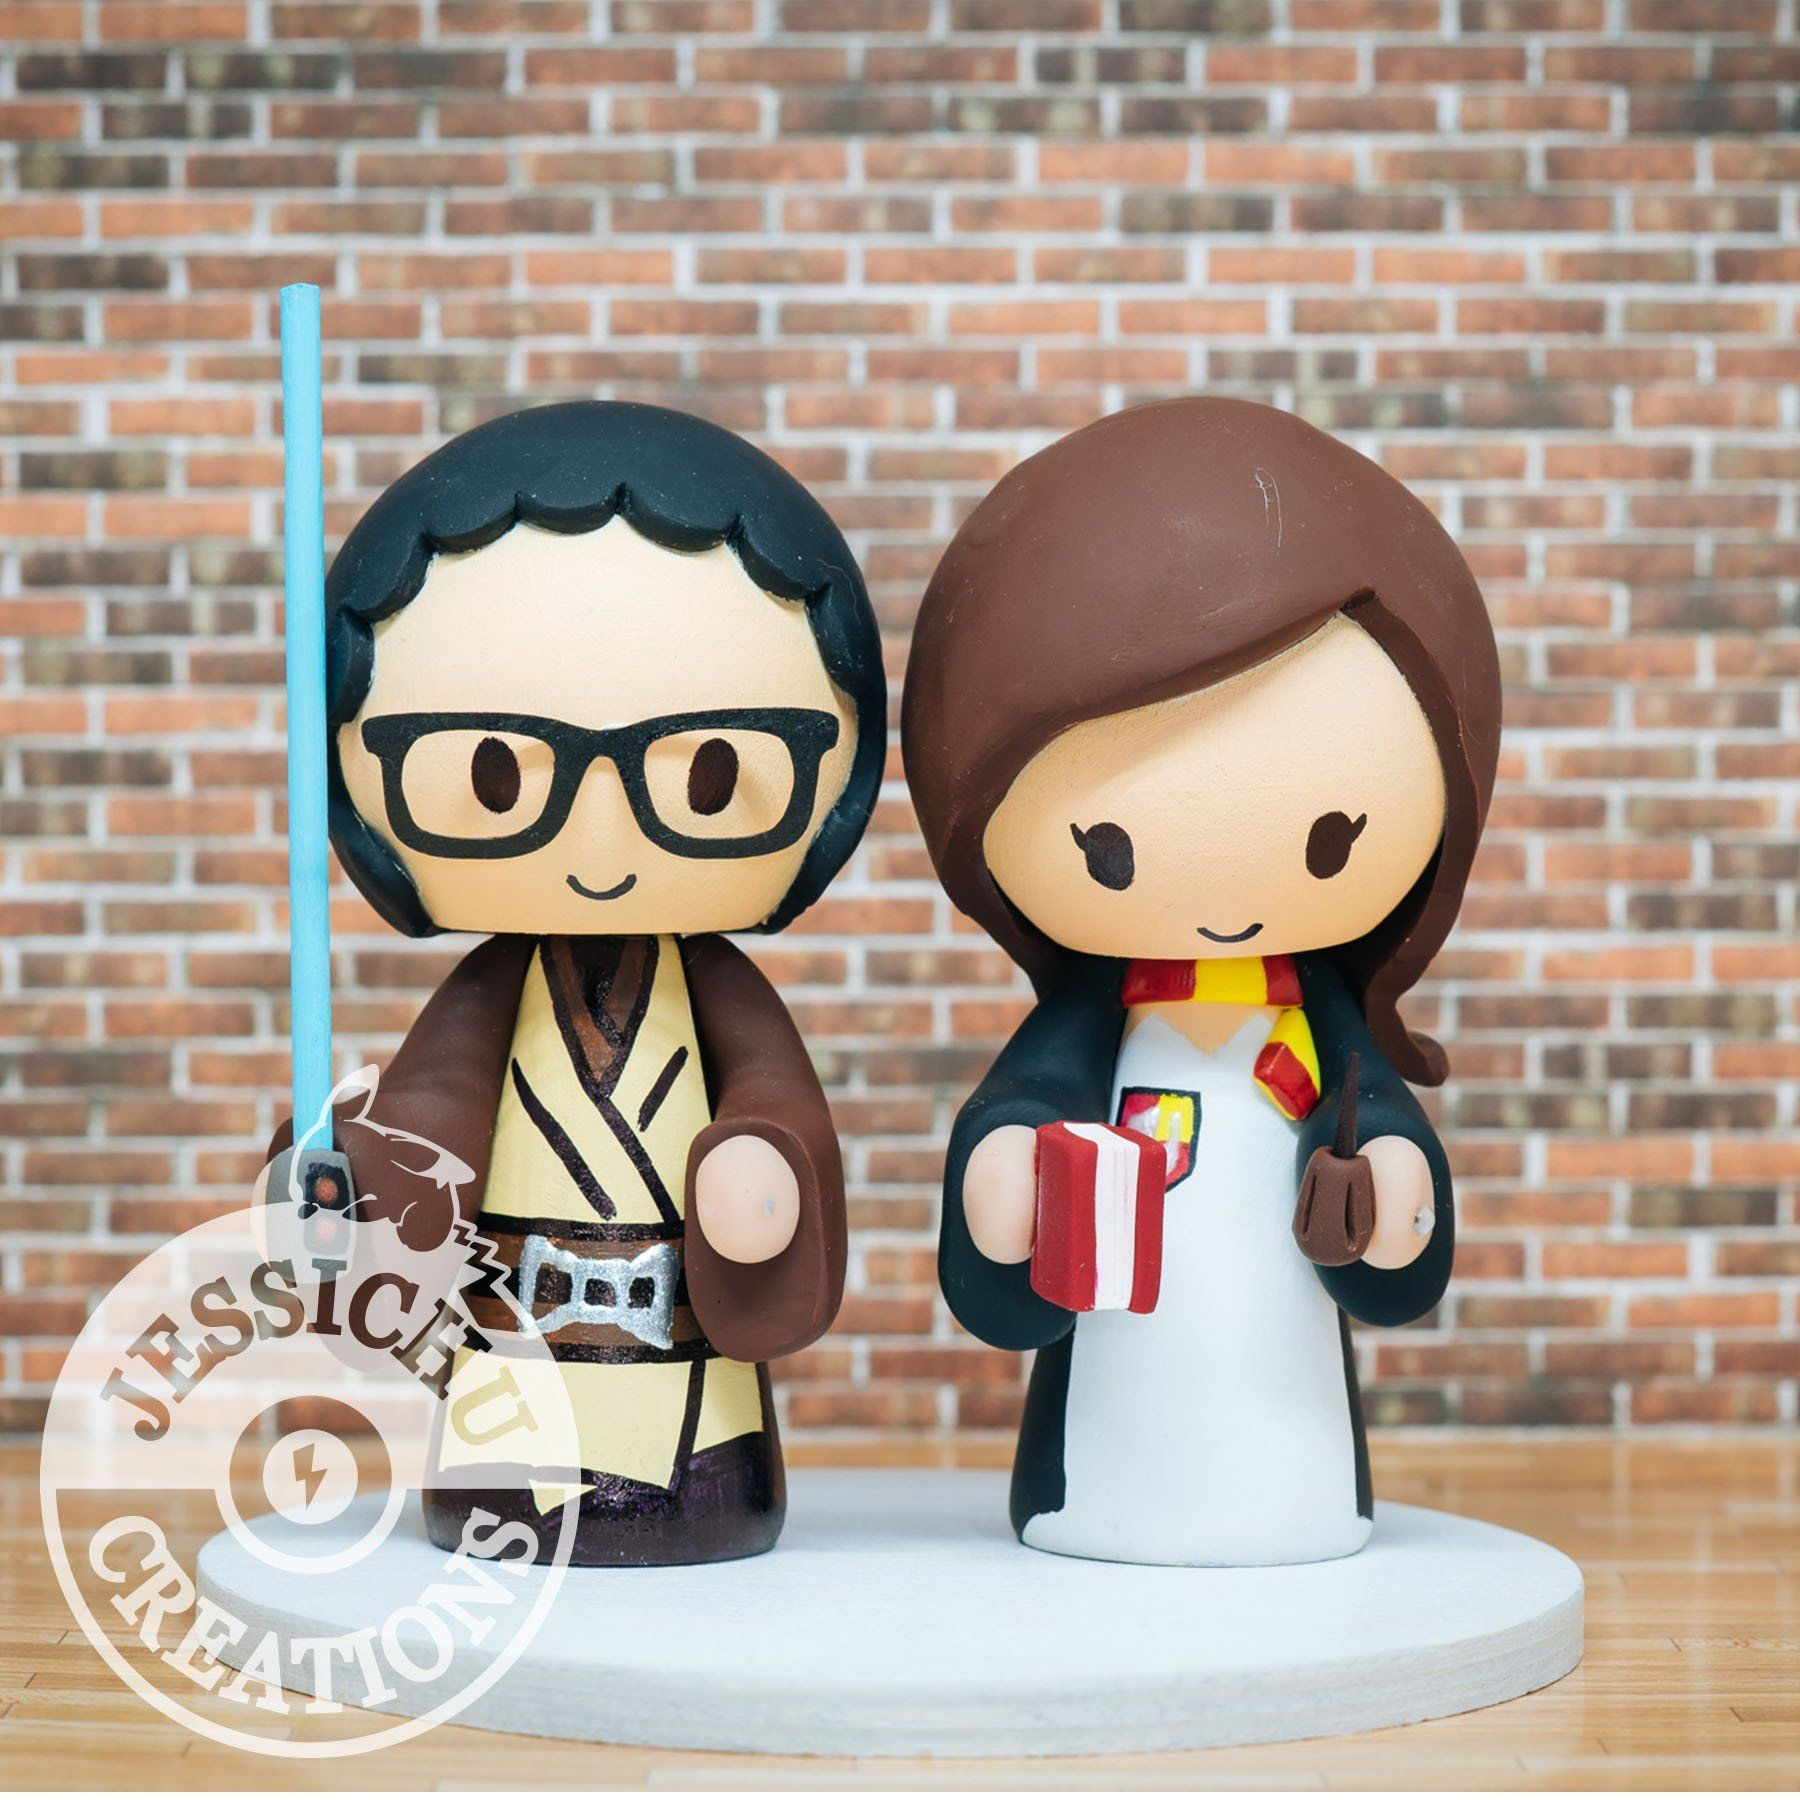 Wedding cake topper figurines costume type custom order products